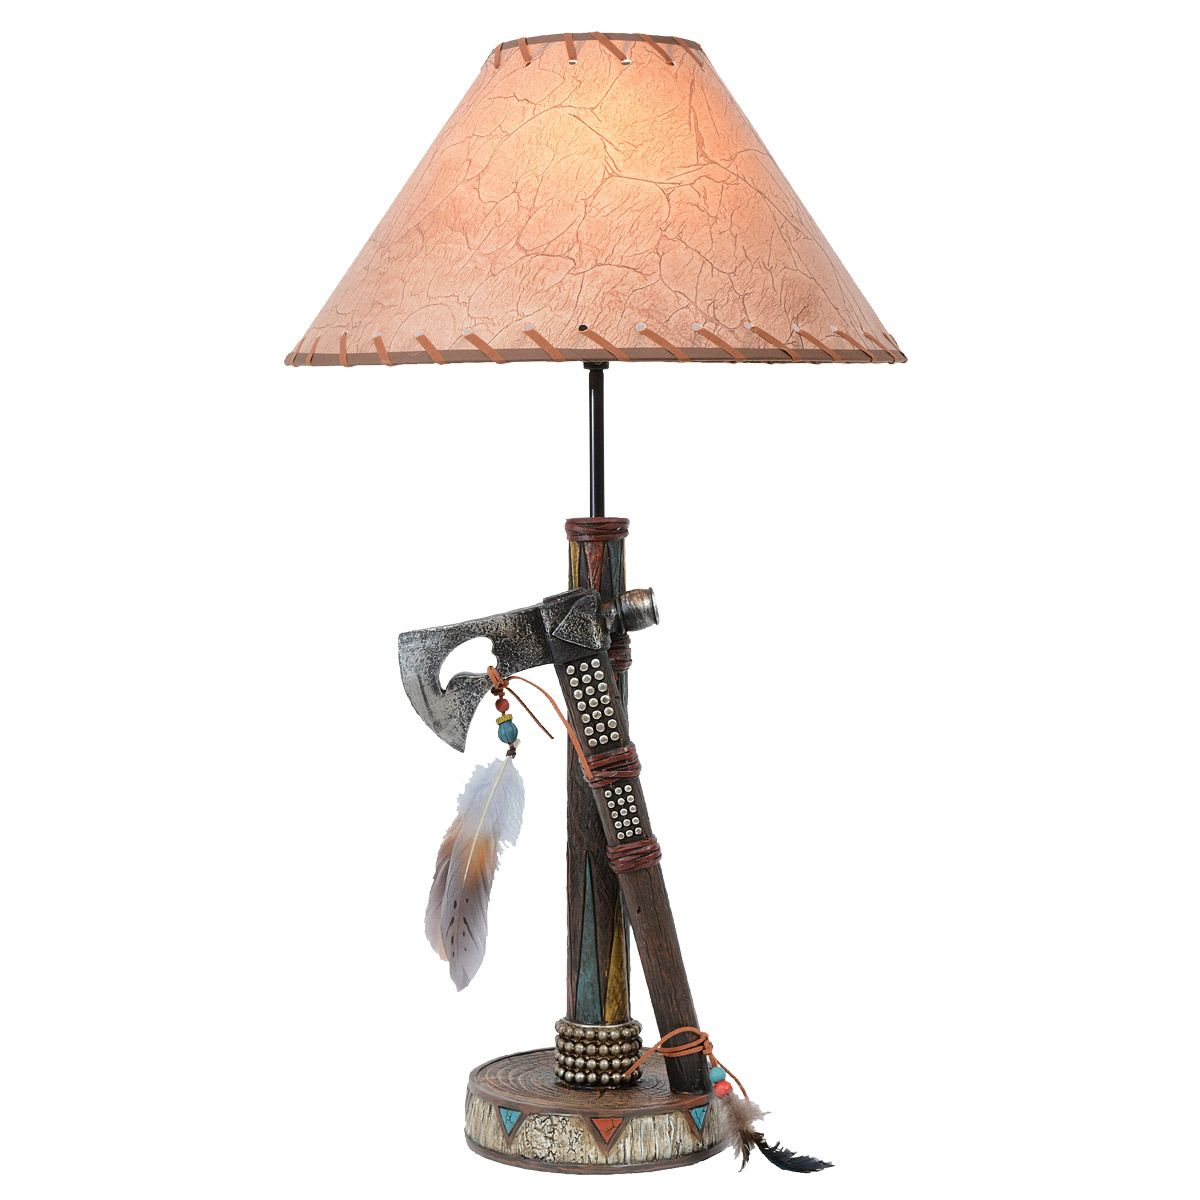 Axe & Feathers Table Lamp